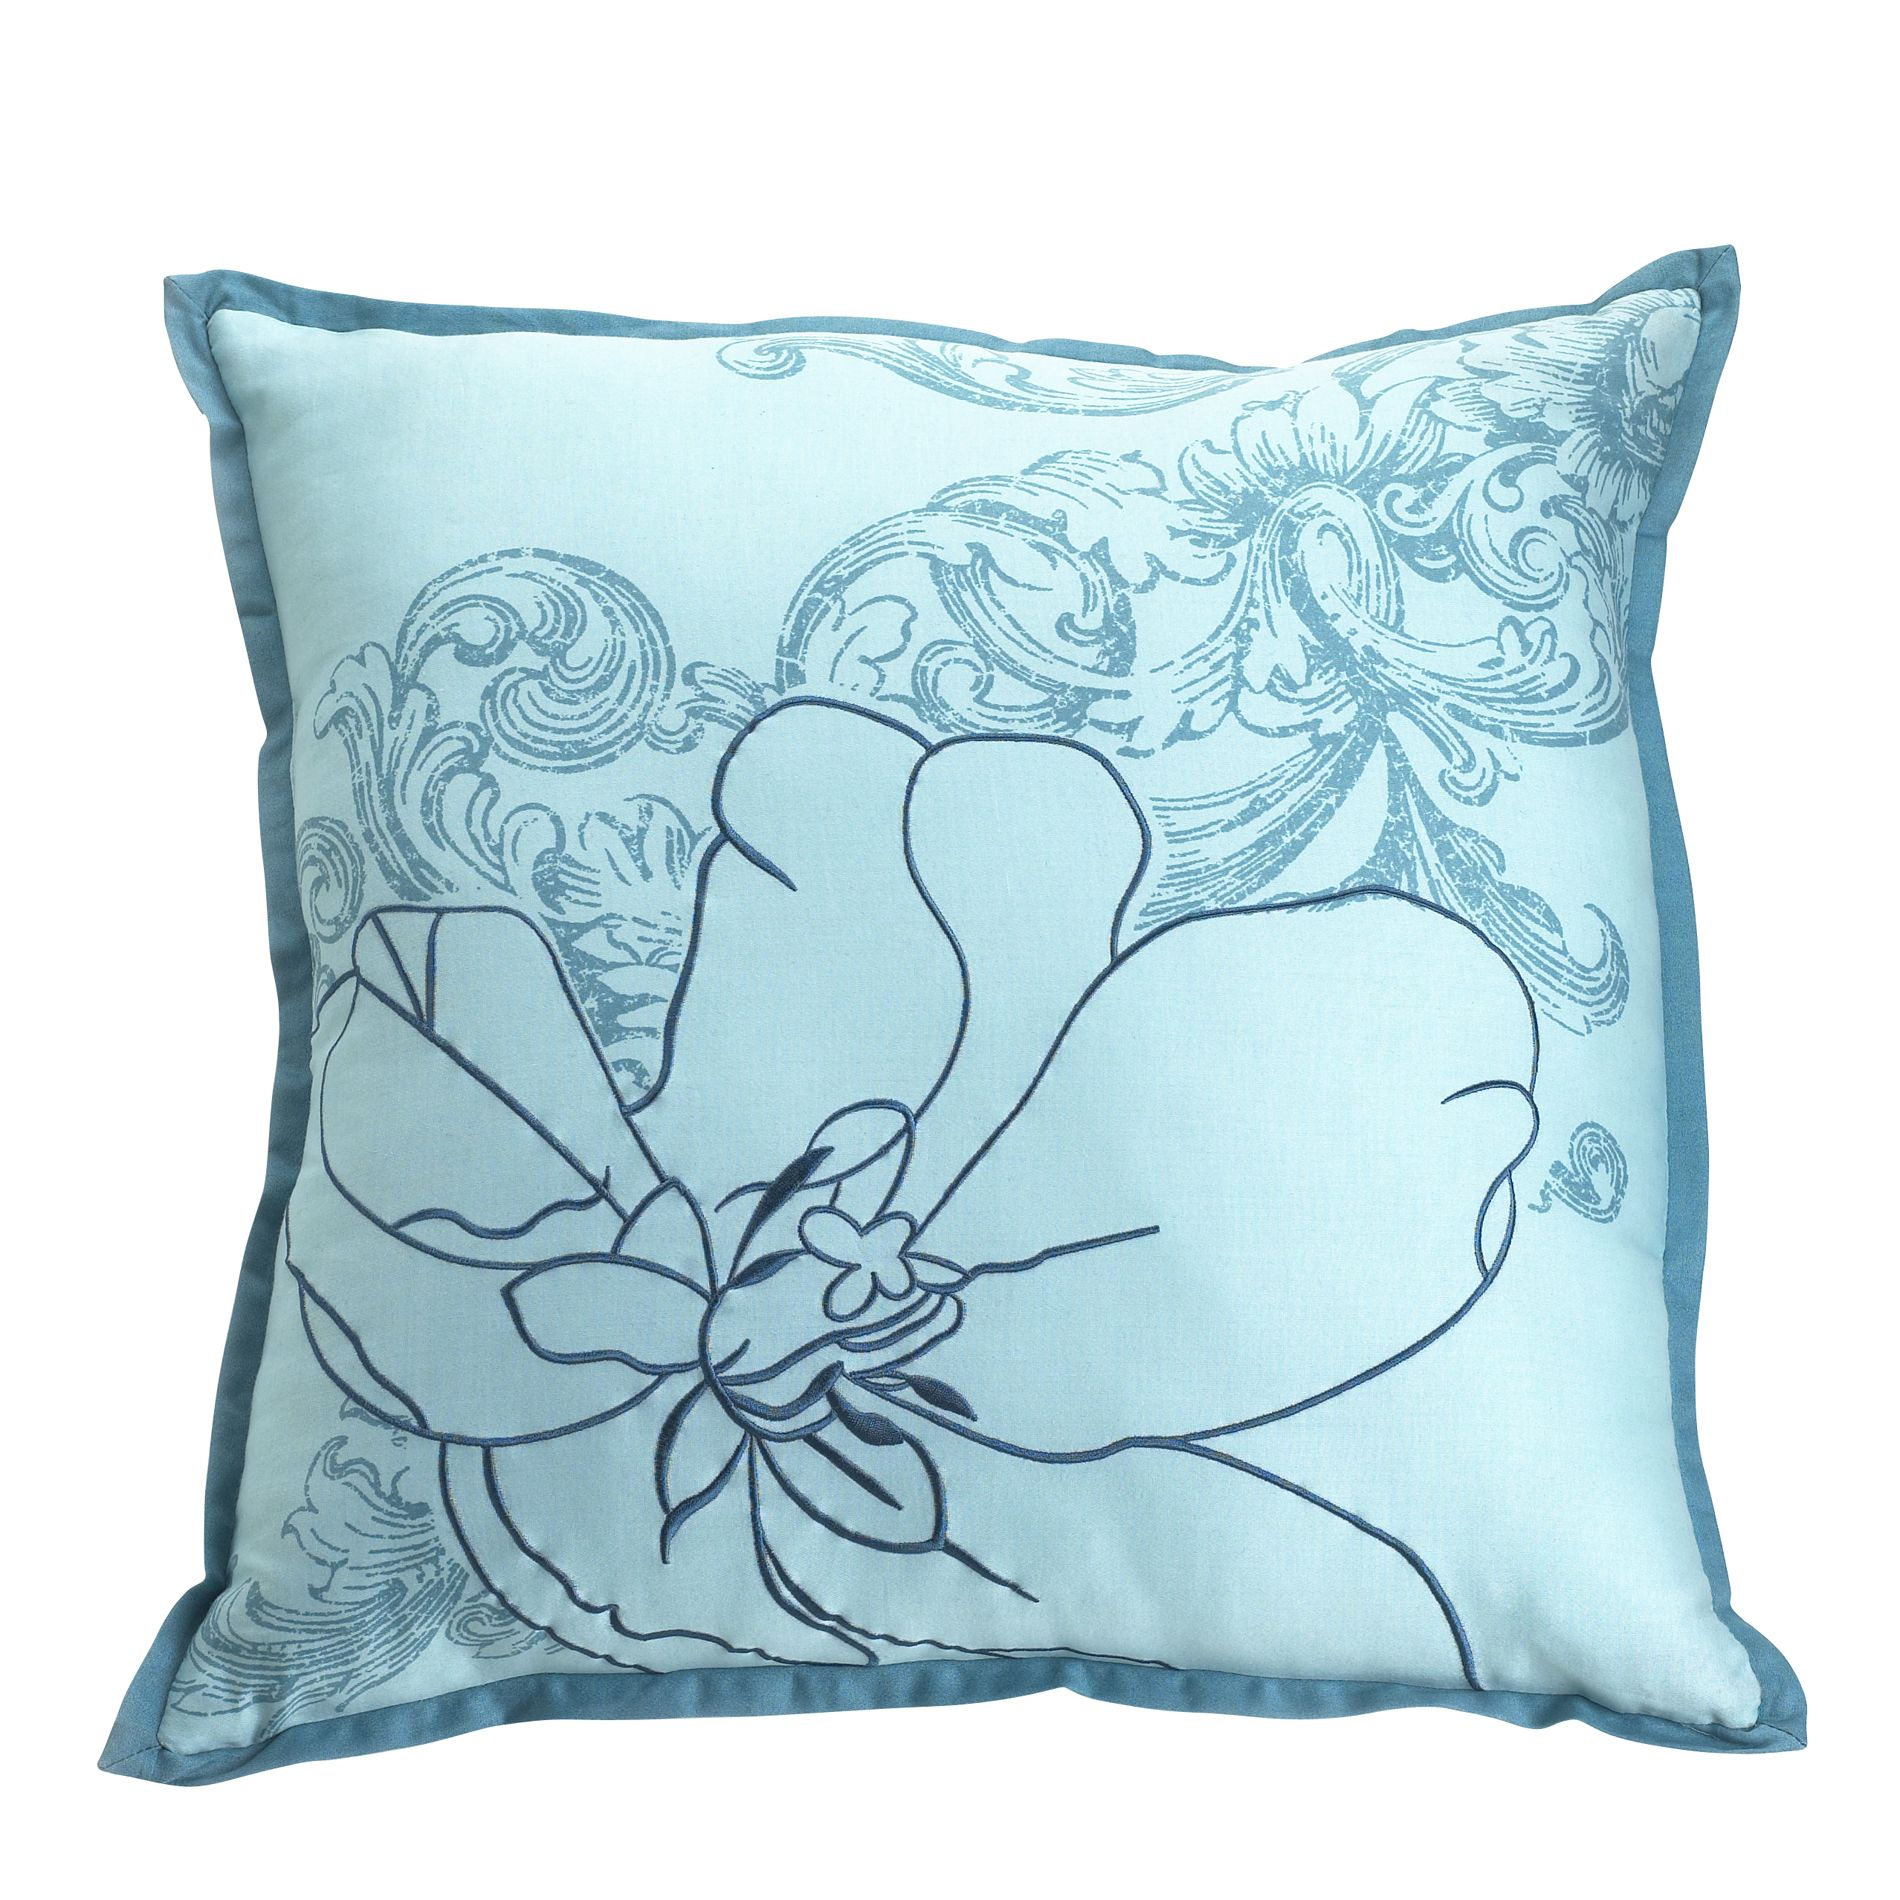 Abstract Floral Decorative Pillow 18X18